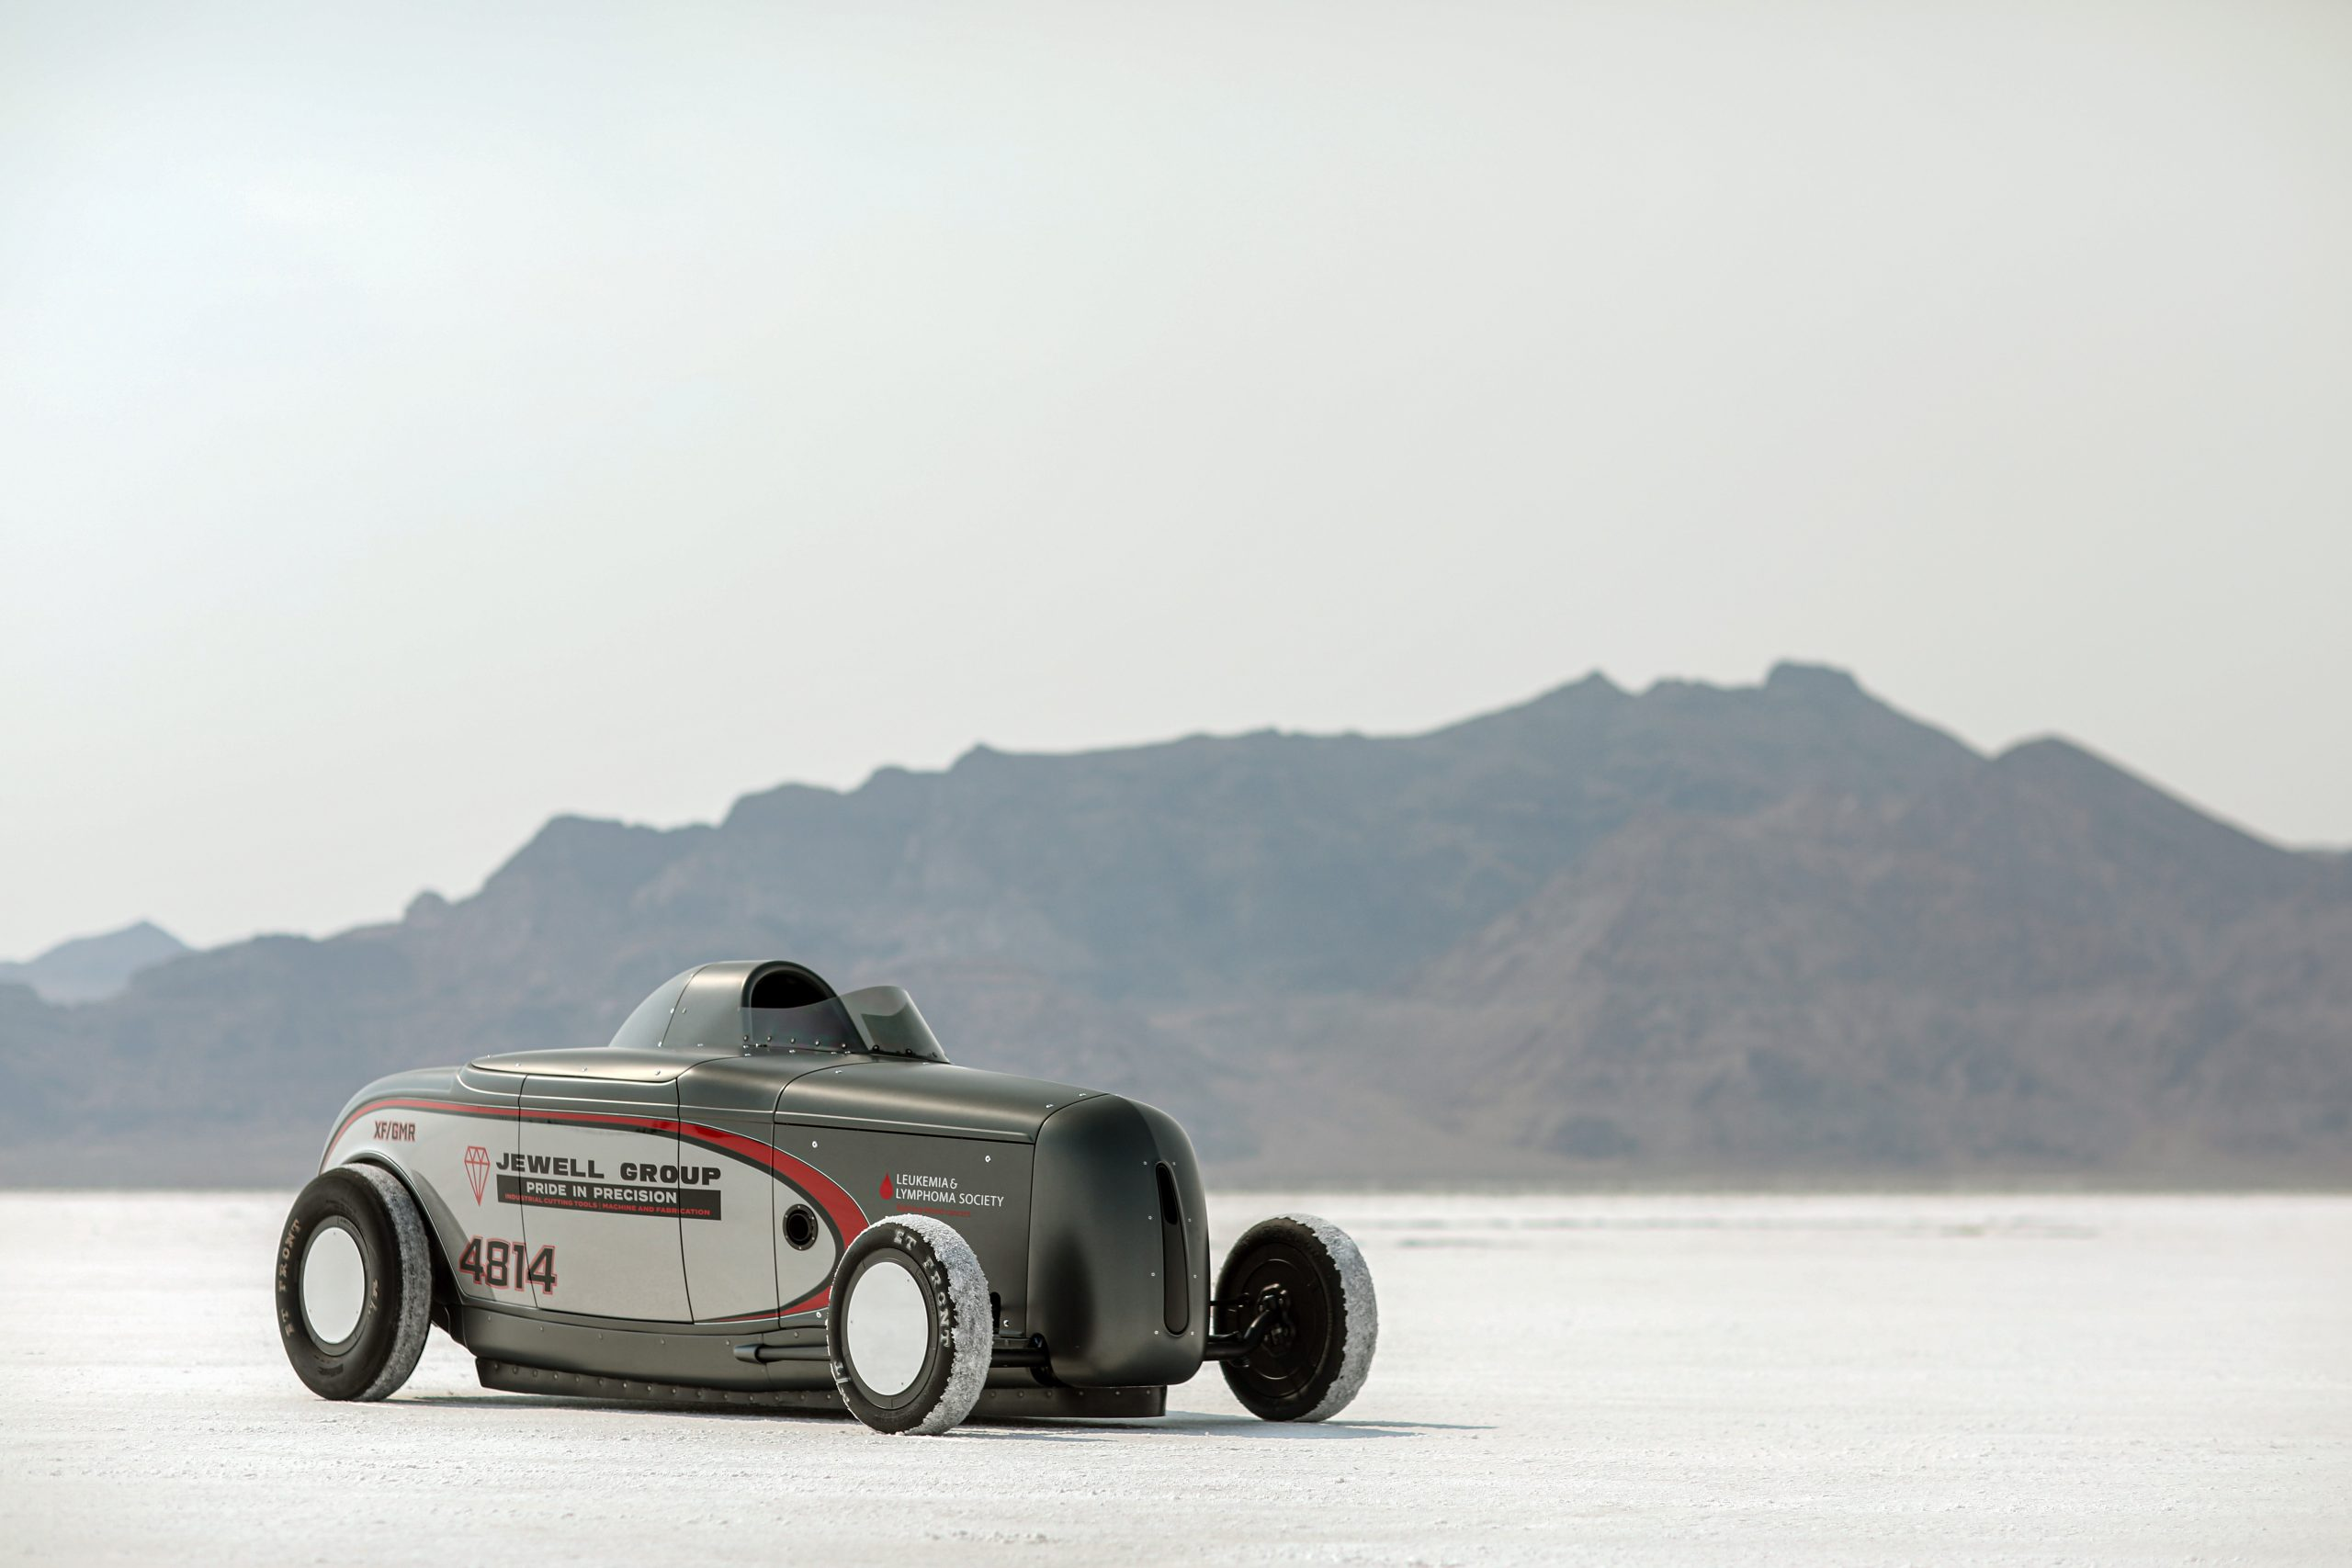 A seriously mean flathead V-8 powers this Bonneville record holder